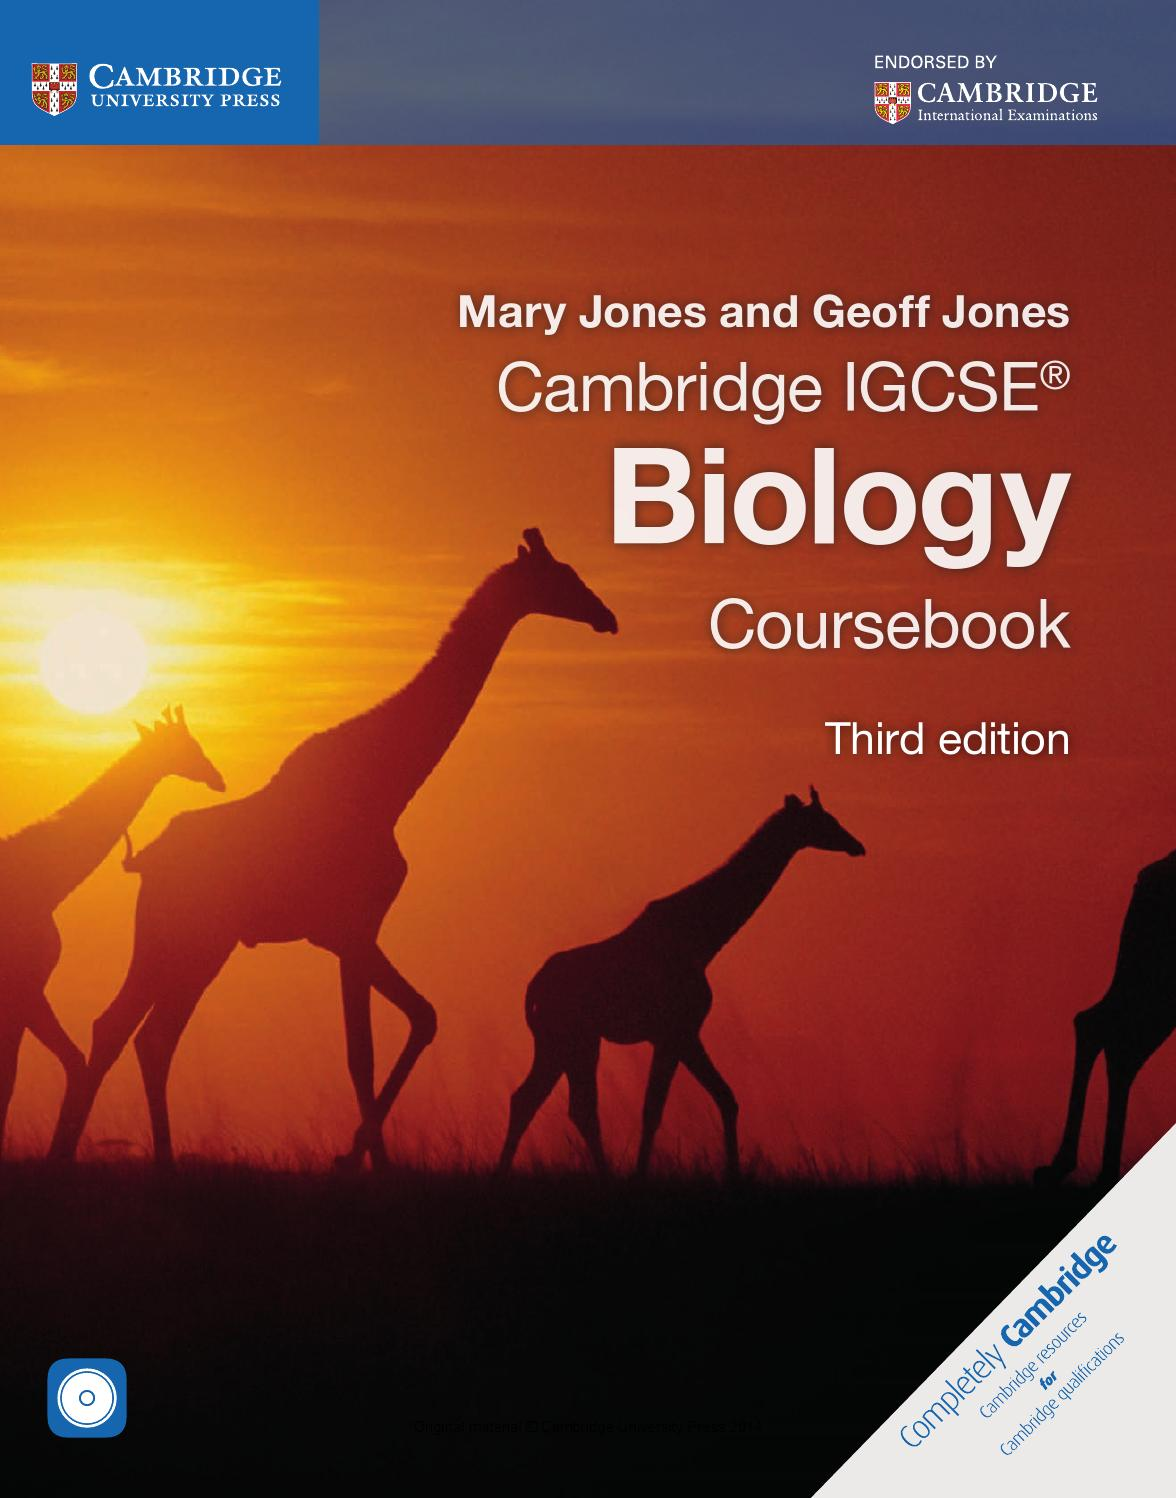 Cambridge IGCSE Biology Coursebook (third edition) by